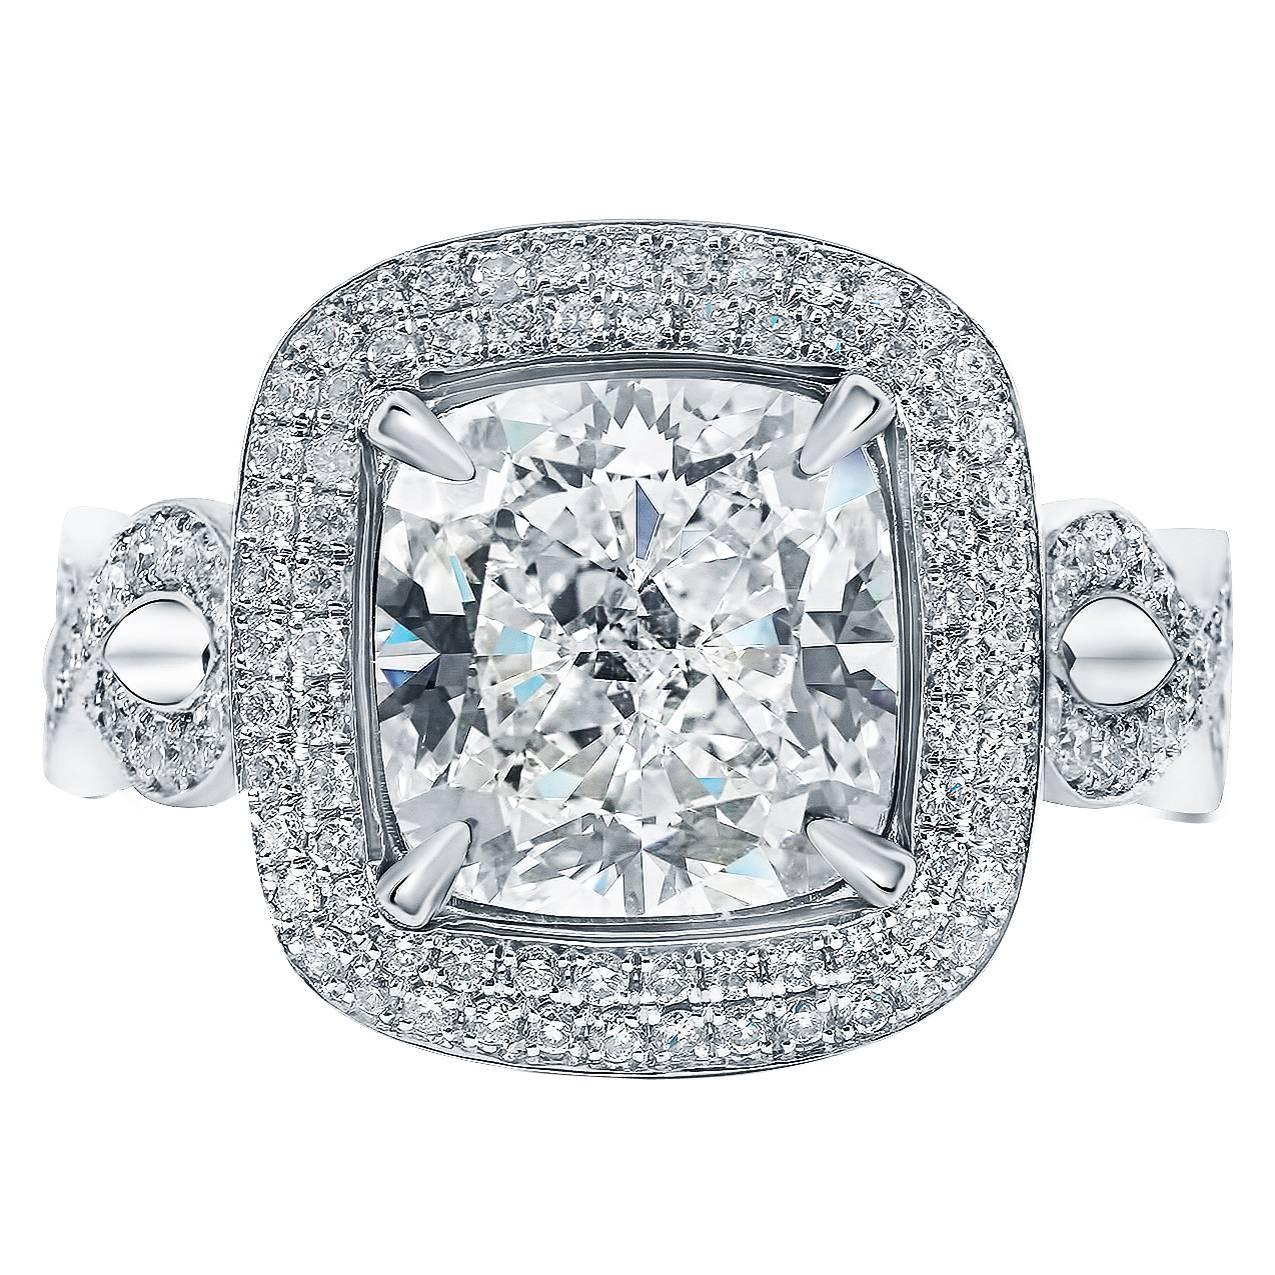 4 00 Carat GIA Cert Cushion Cut Double Pave Diamond Halo Engagement Ring For